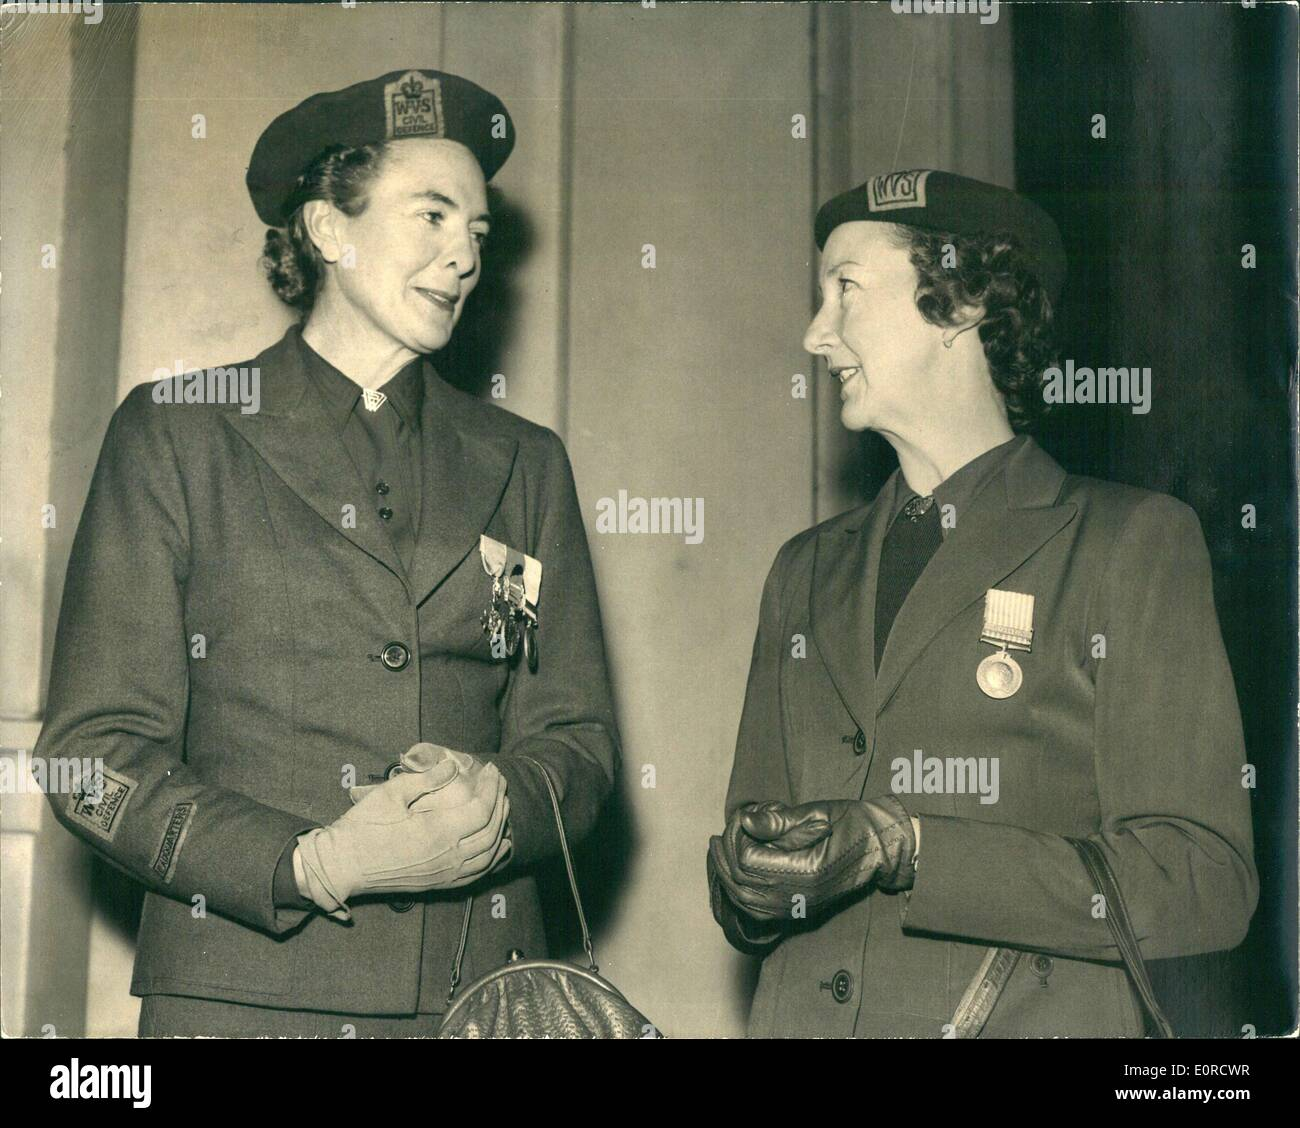 Mar. 03, 1959 - Palace Party for W.V.S. Members: Two members of the women's voluntary service, Miss N. Wilson, M.B.E. (left) of - Stock Image